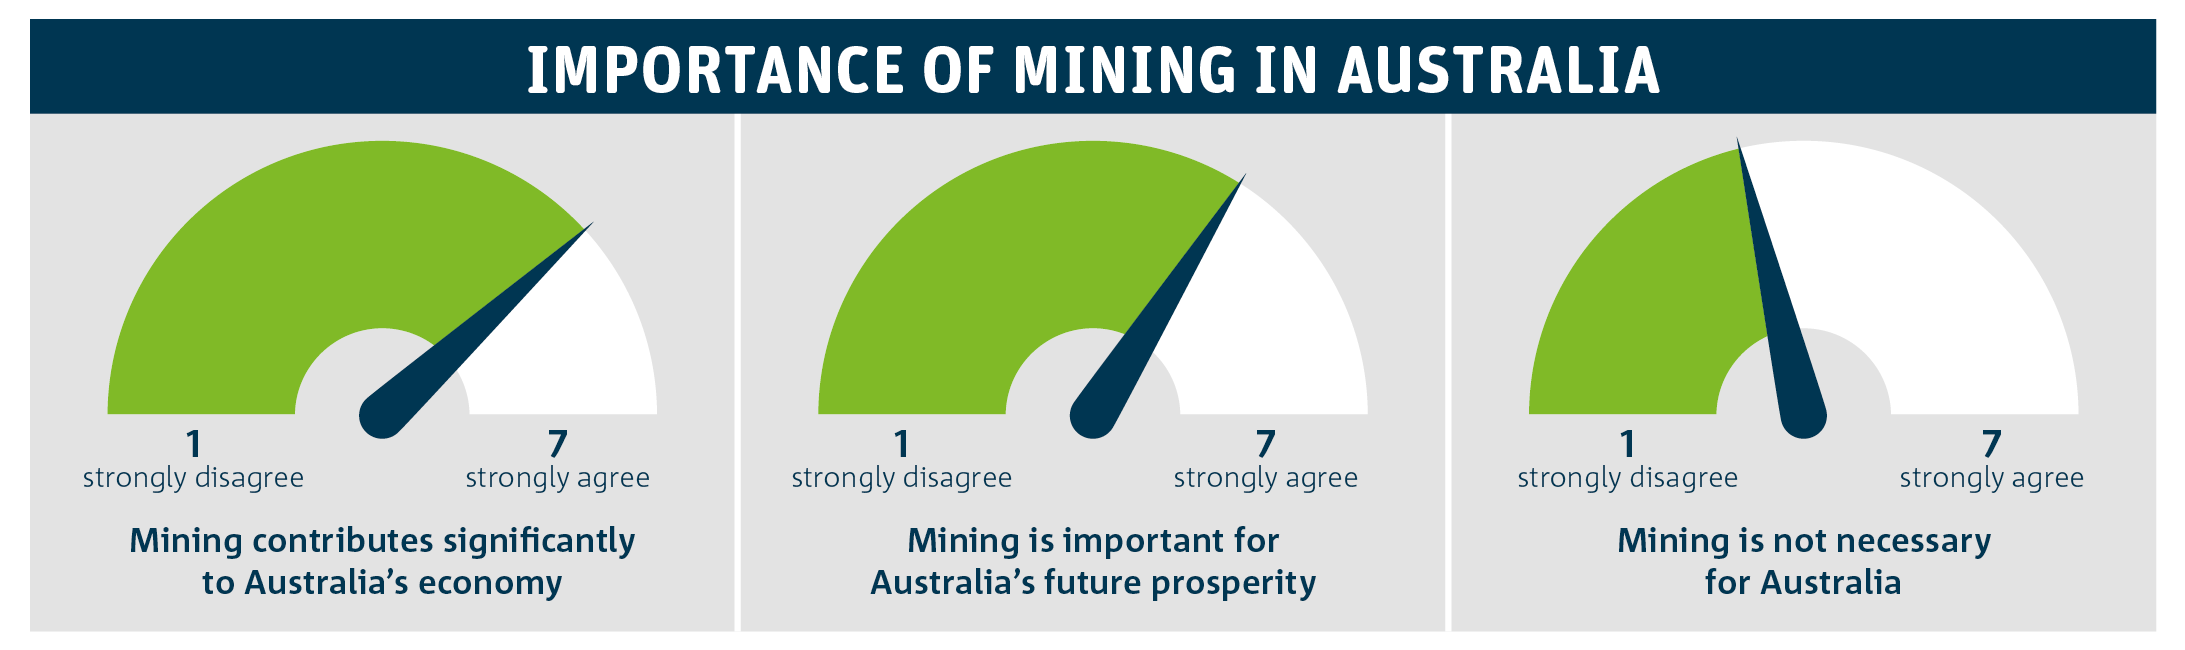 Three graphs showing the importance of mining in Australia.